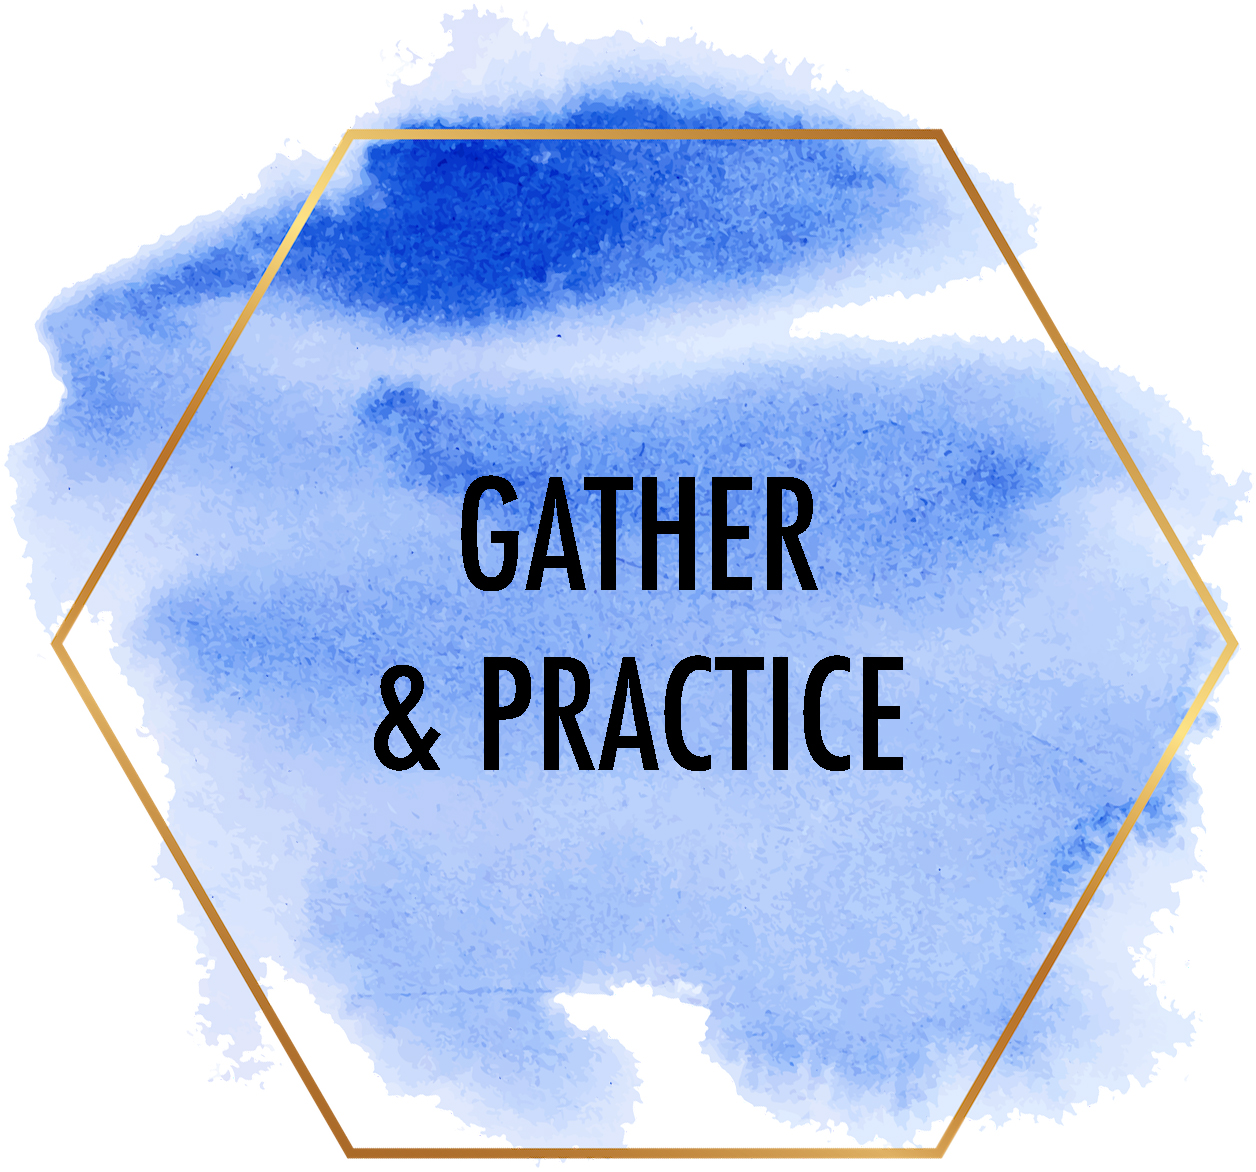 gather and practice.jpg